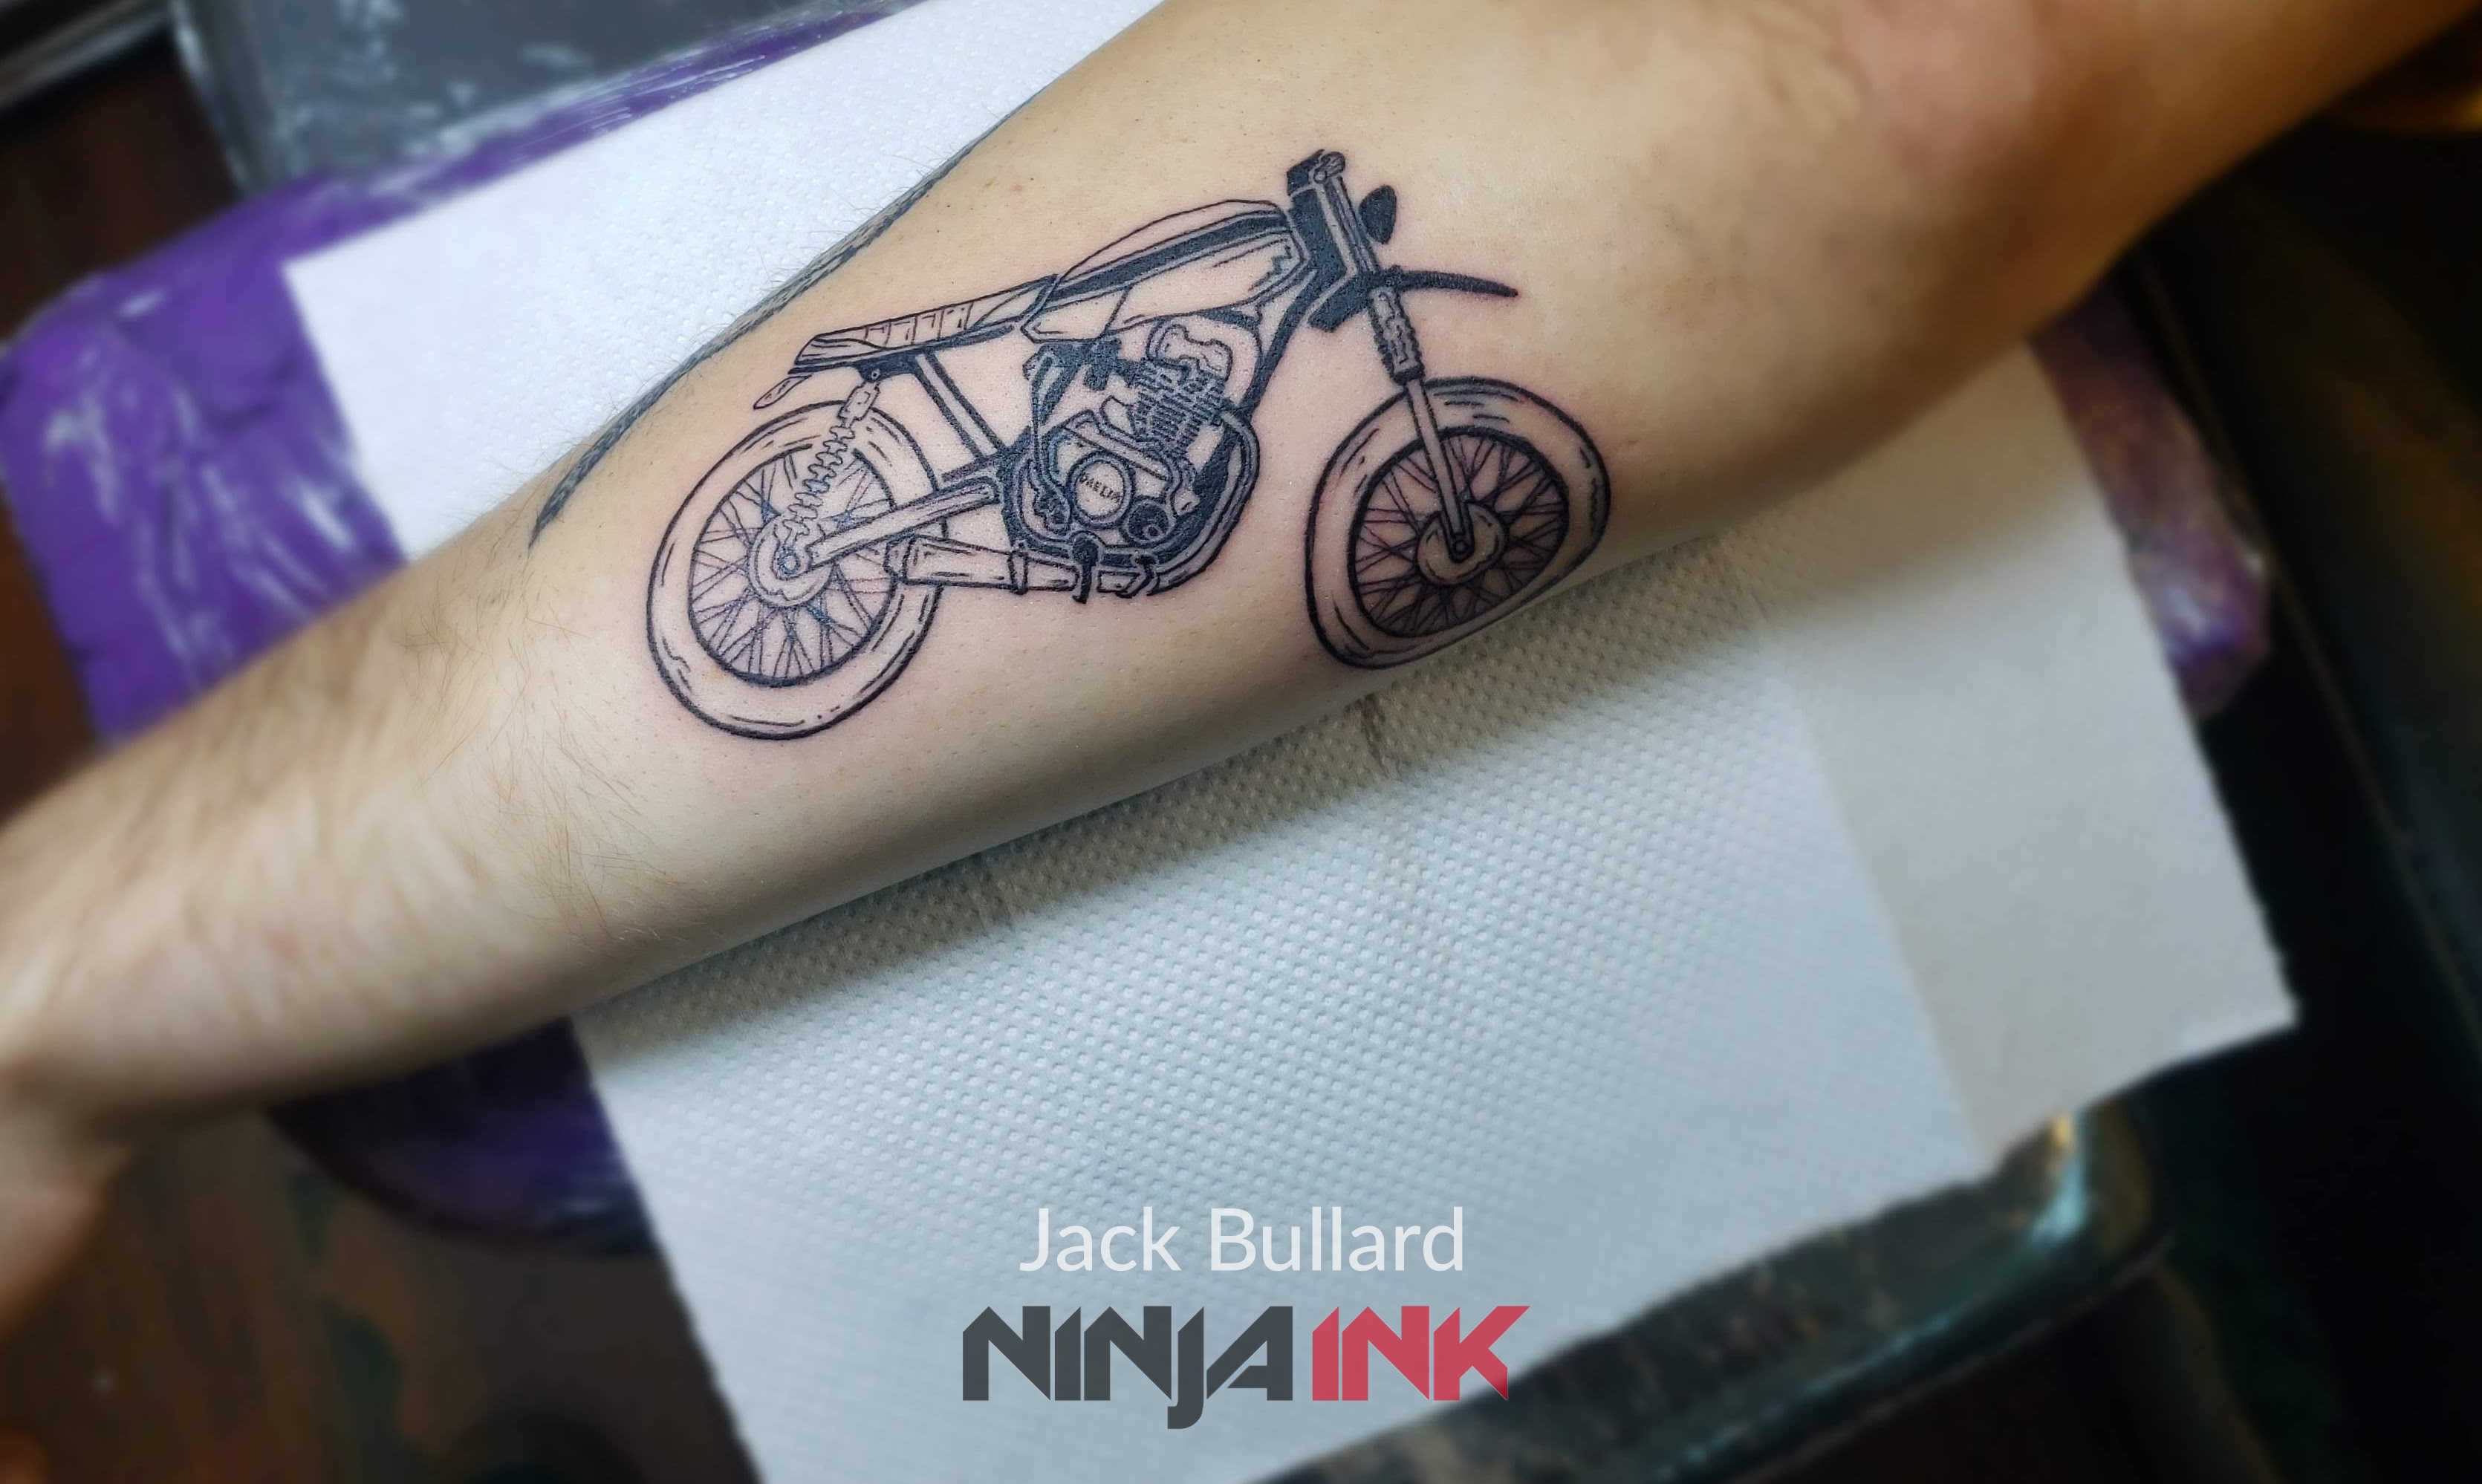 JackBullard, Ninja Ink Tattoo 202113